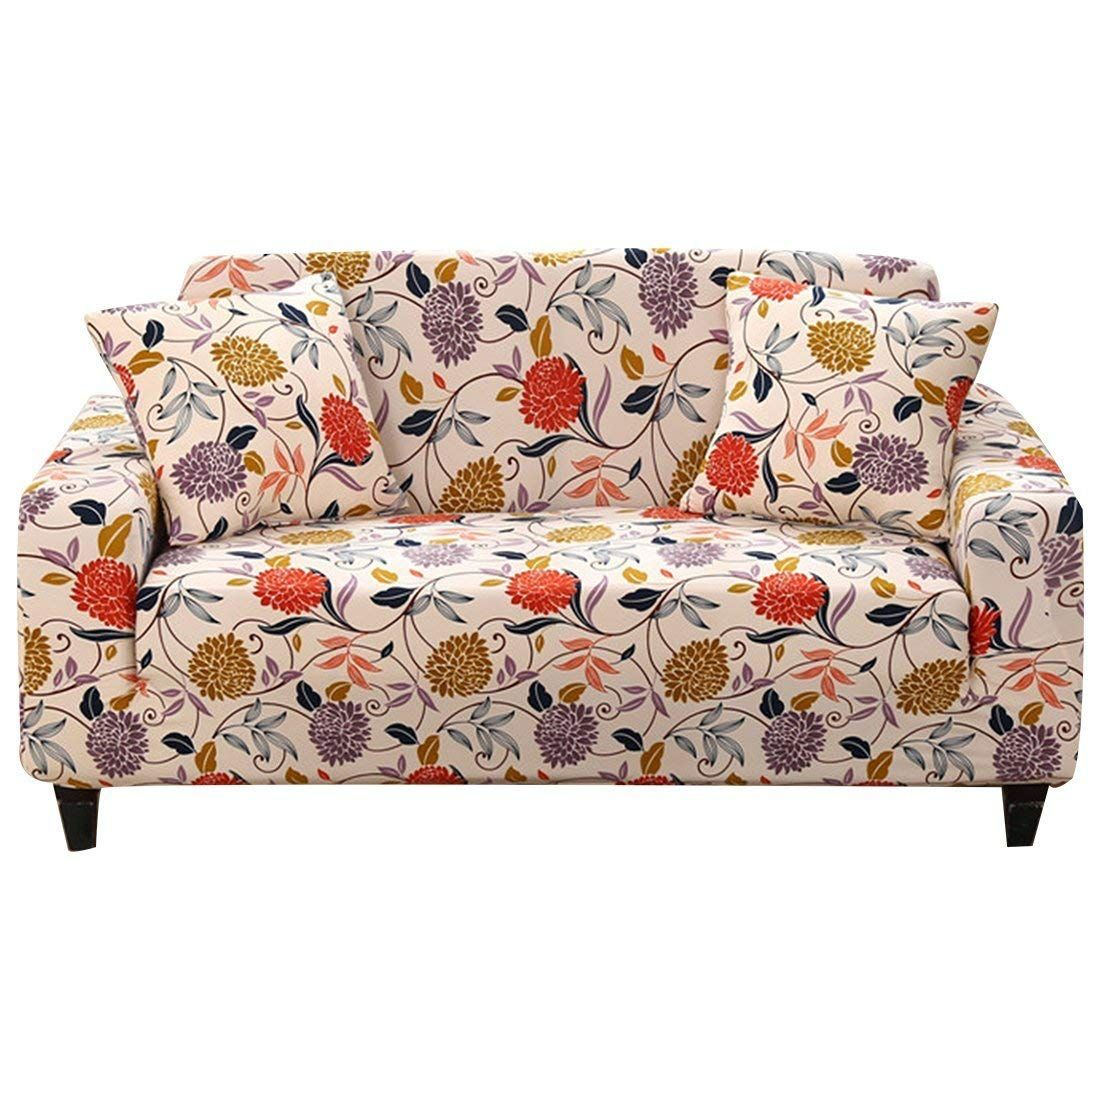 FORCHEER Stretch Couch Covers Sofa Slipcovers